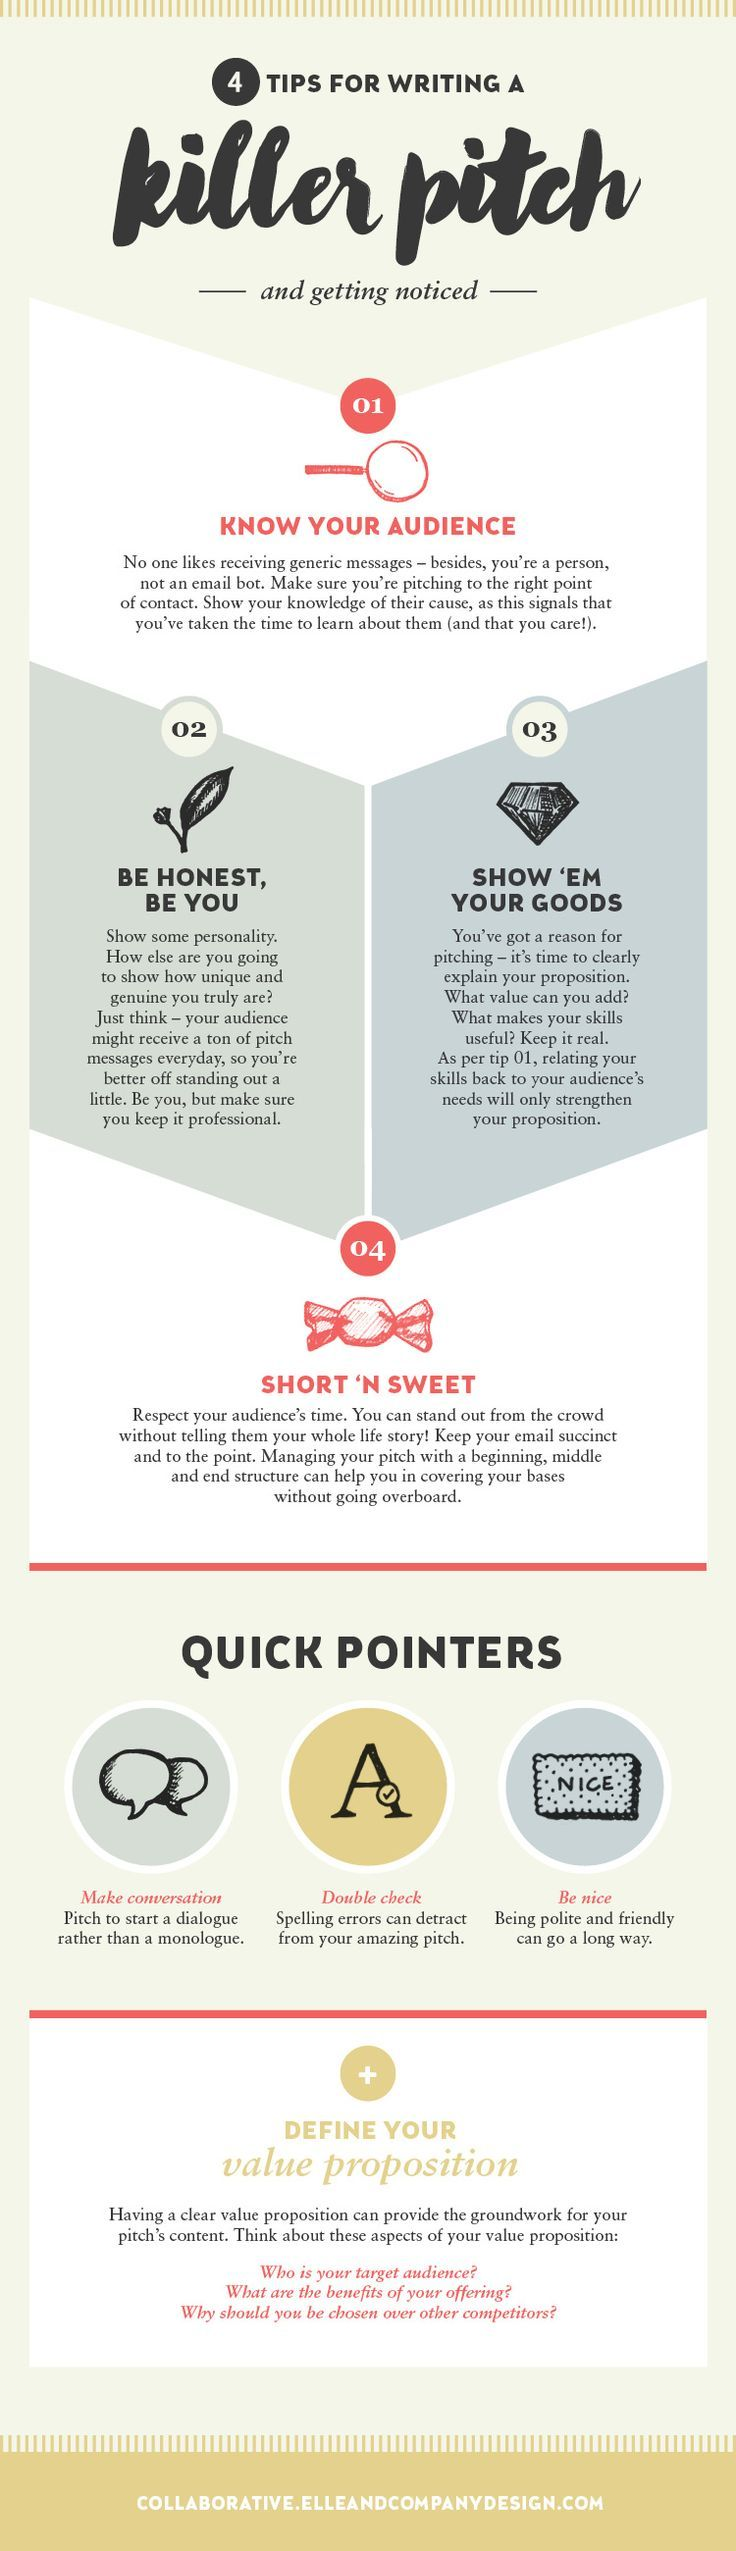 14 best pitch your idea images on pinterest | pitch, business tips